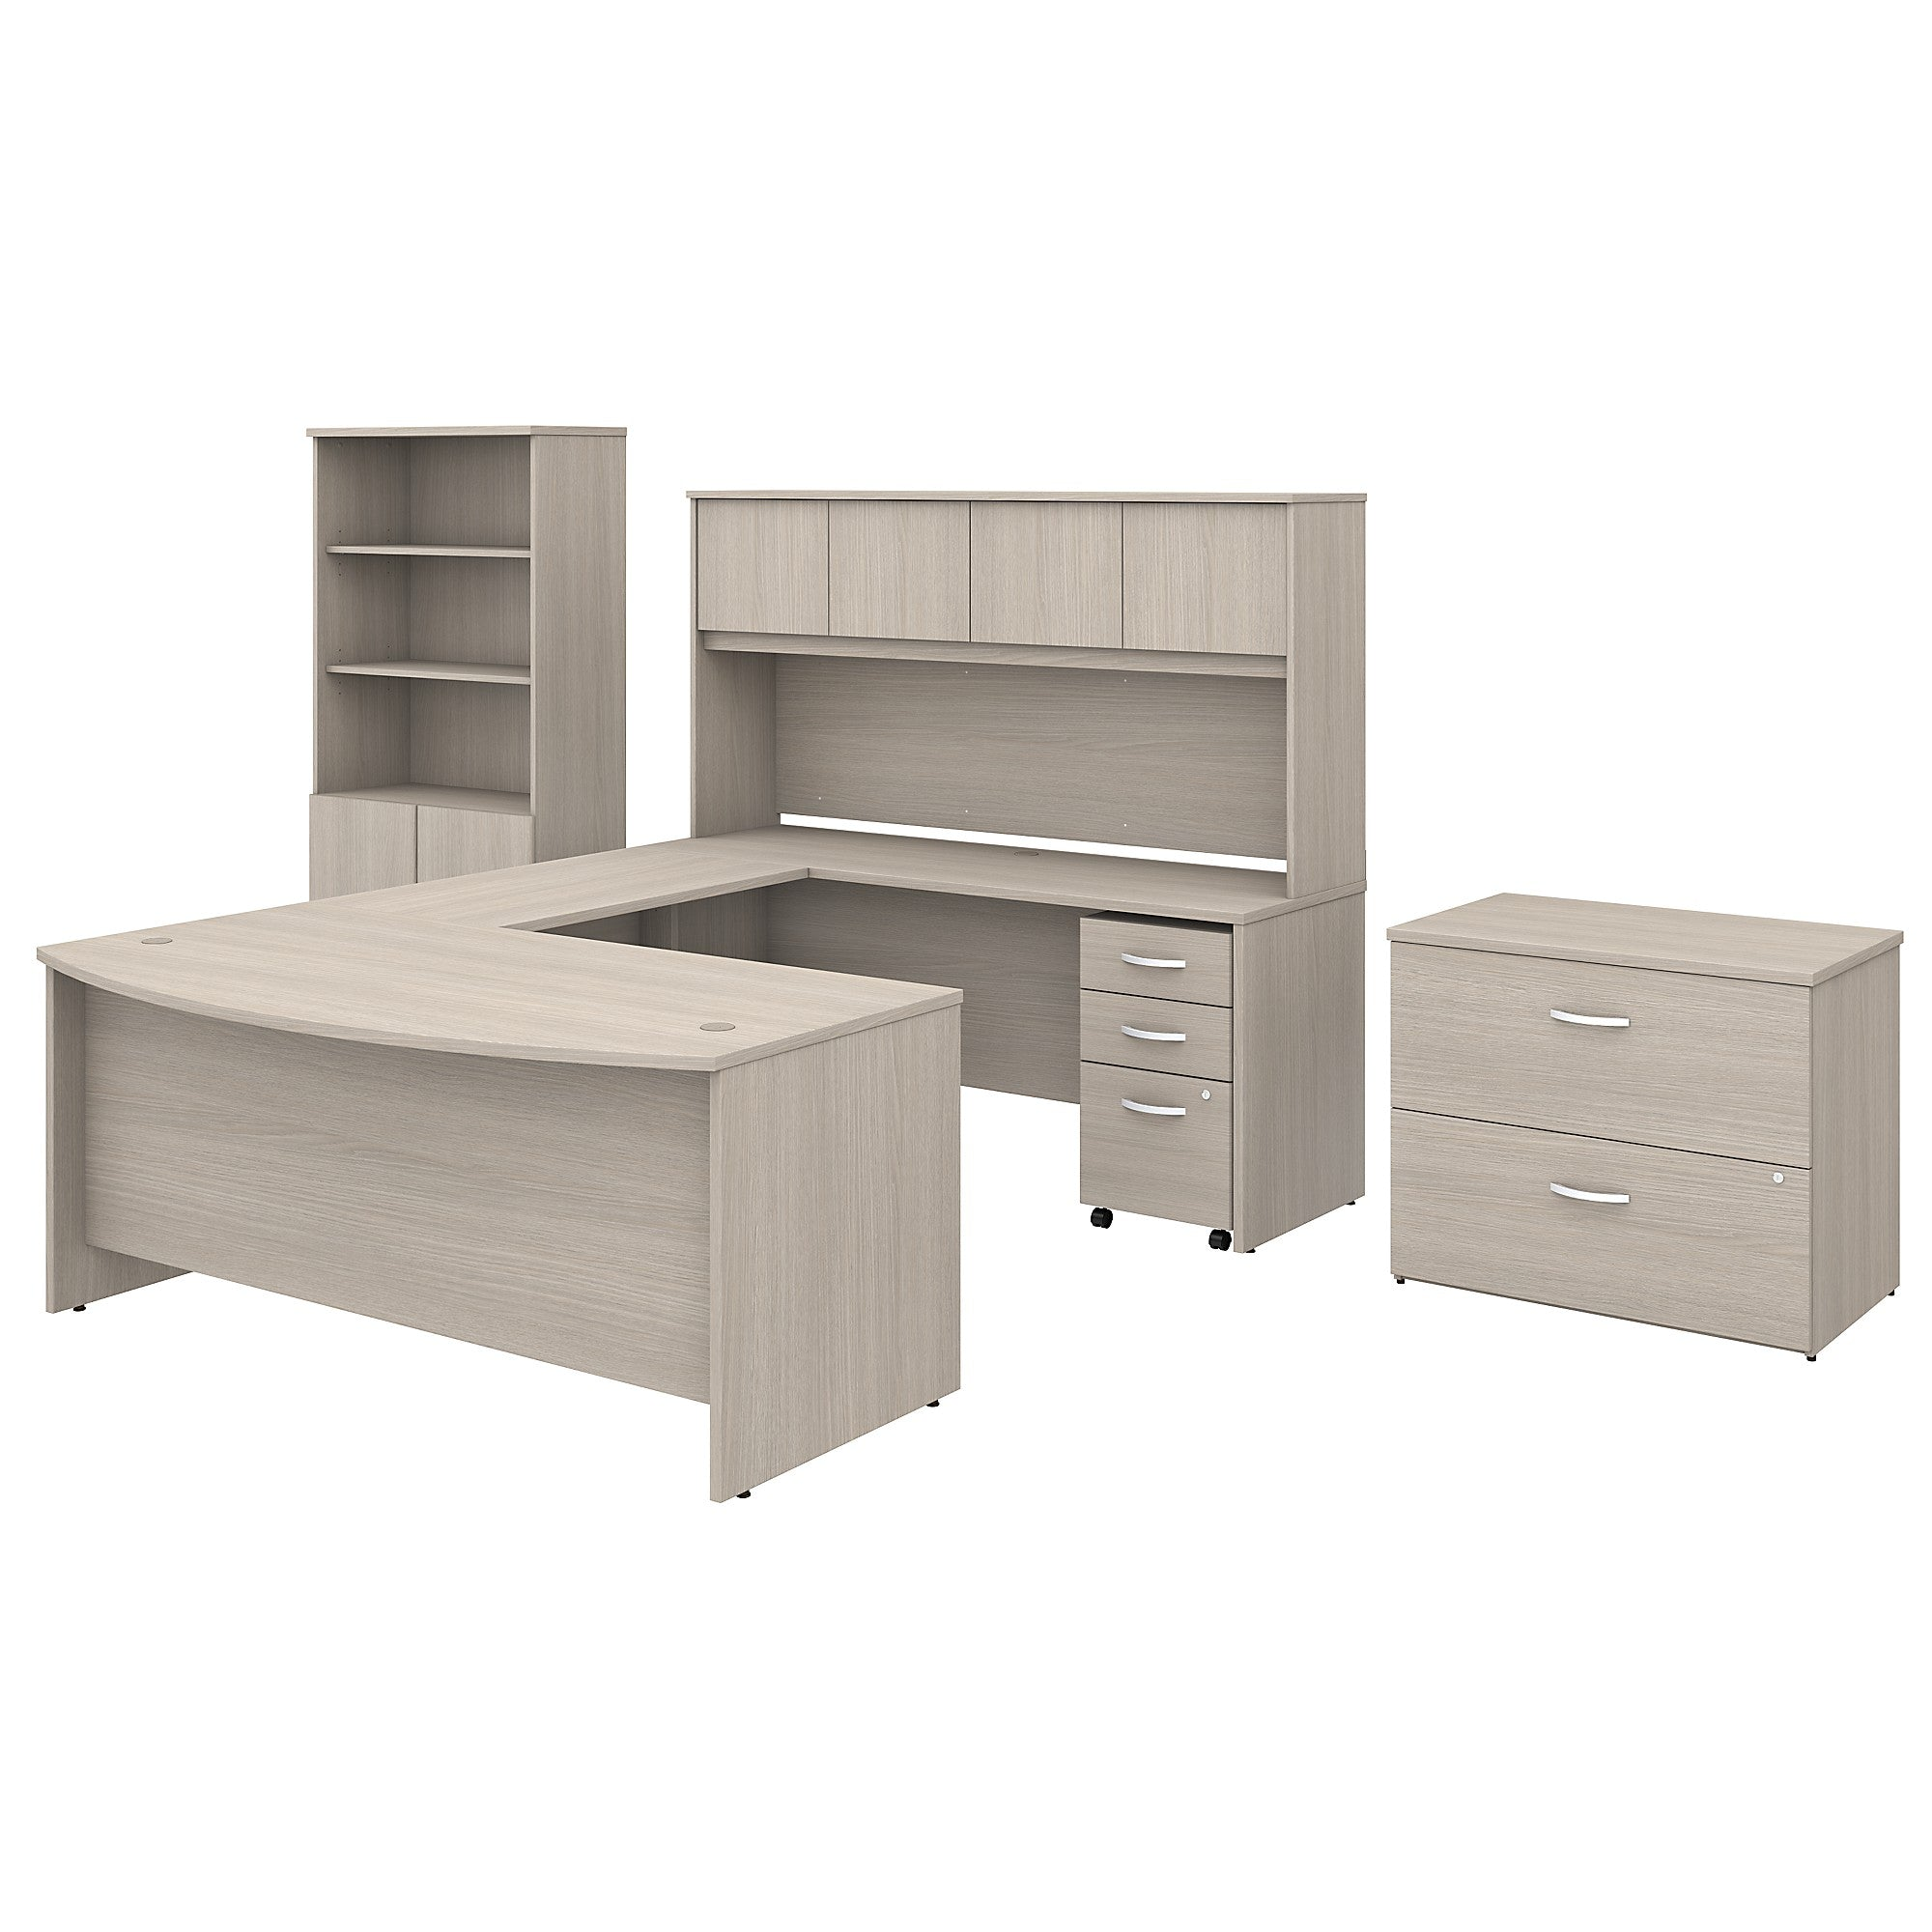 Studio C U Shaped Desk with Hutch, Bookcase & File Cabinets- Sand Oak